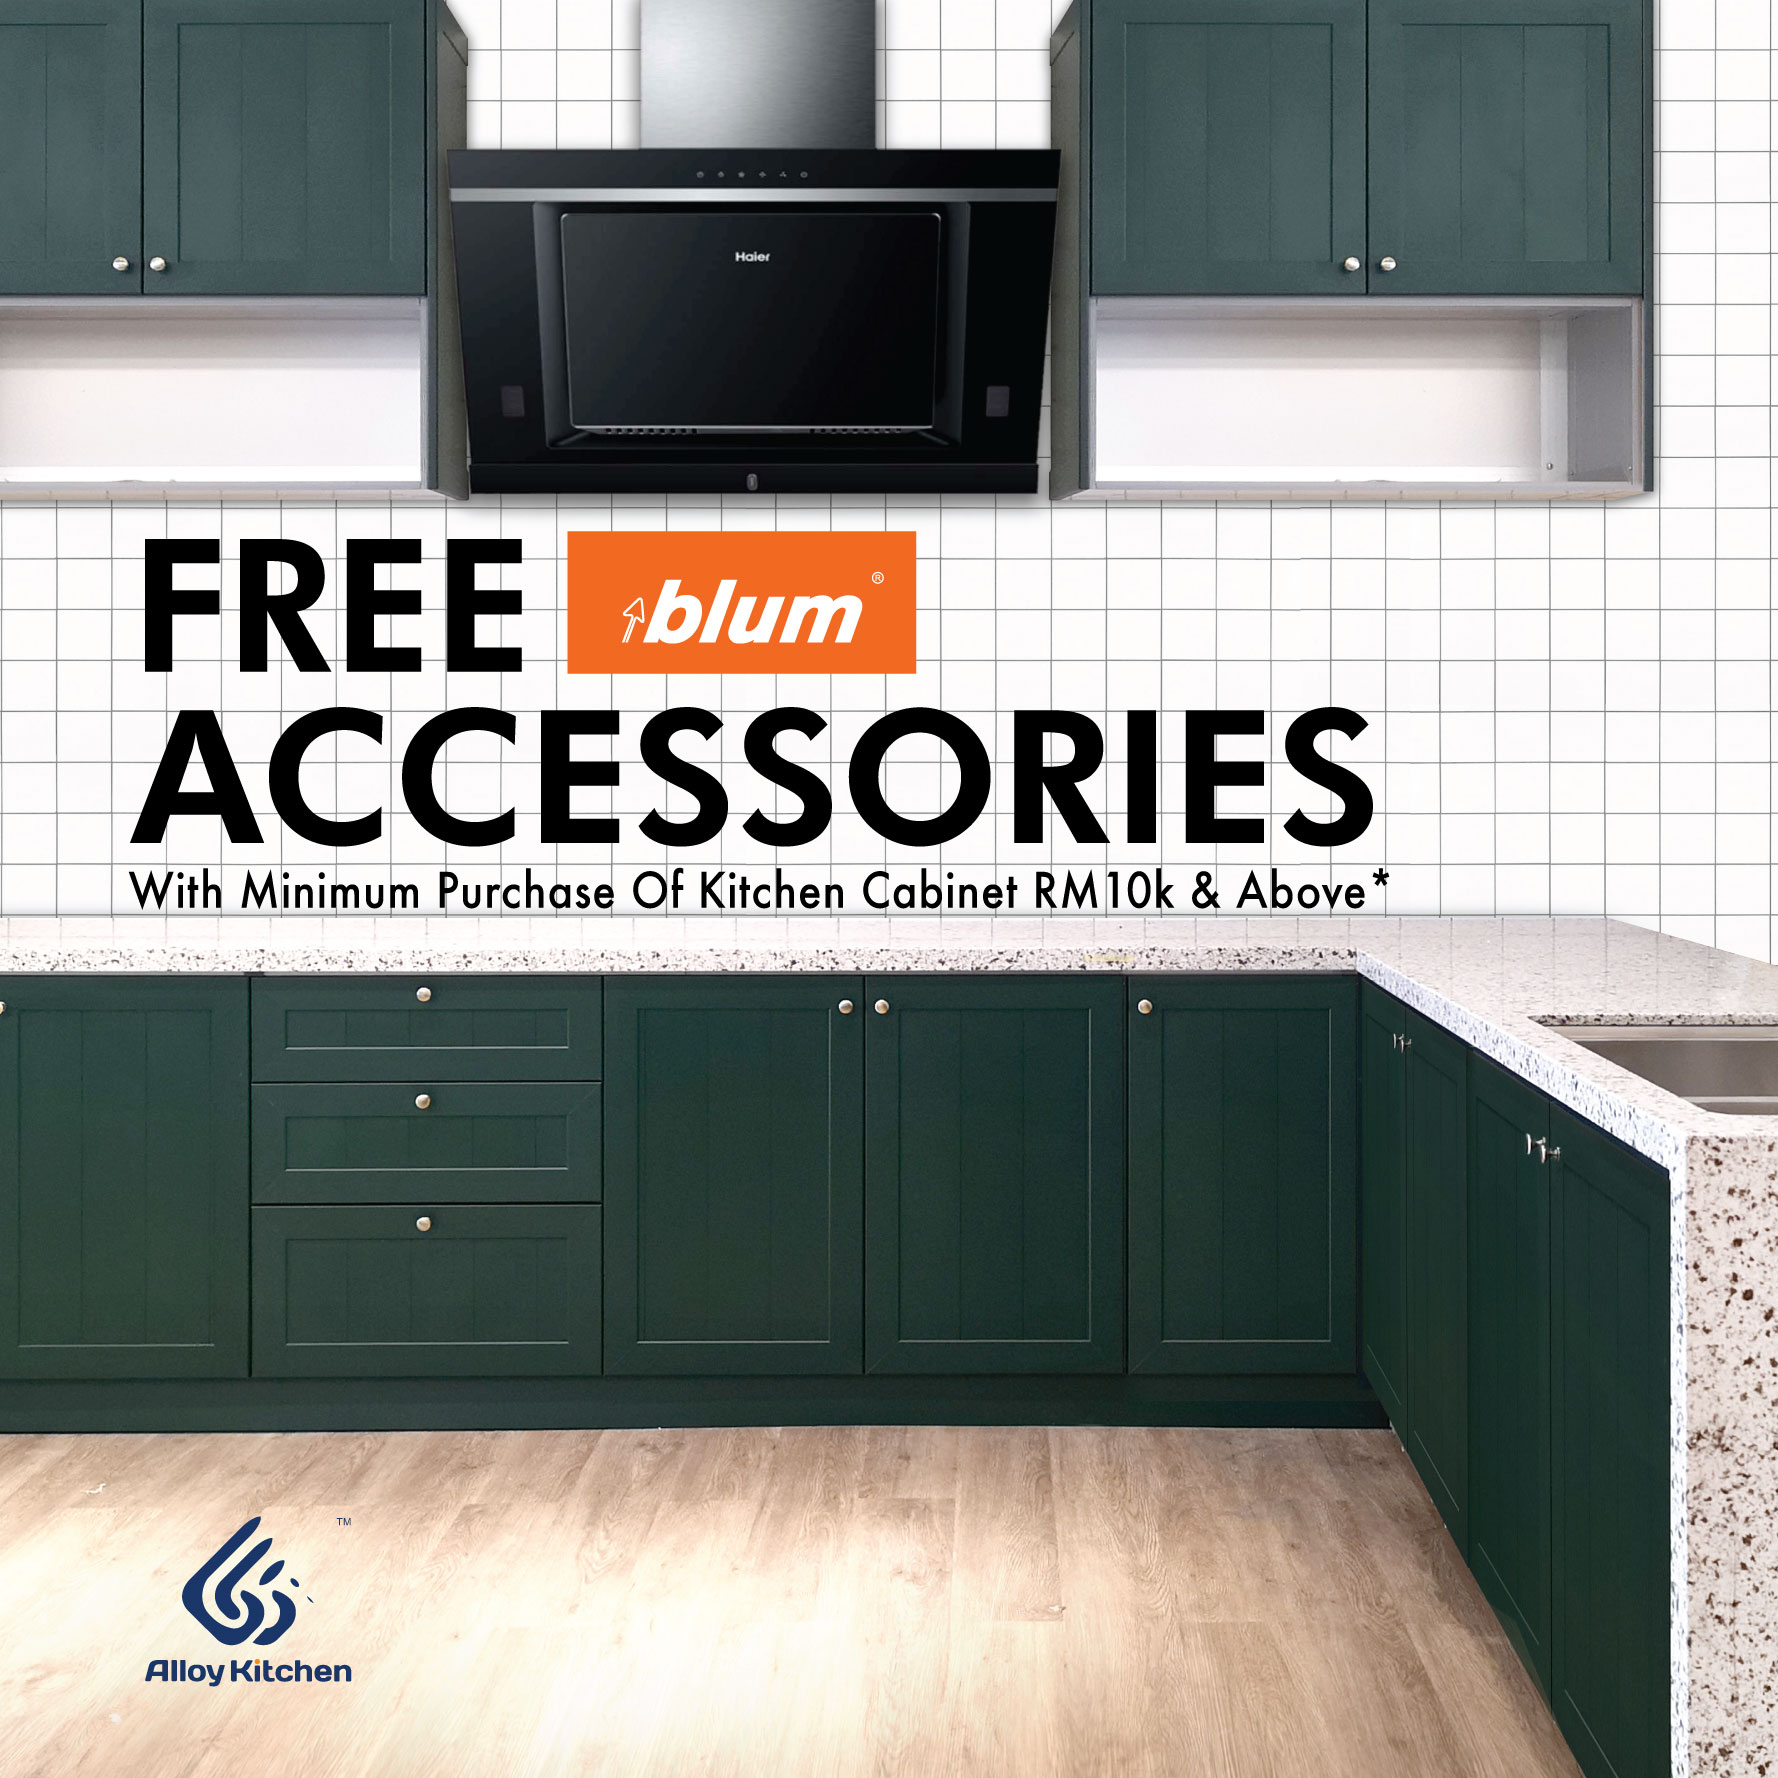 Promotion Ended Alloy Kitchen Free Blum Accessories